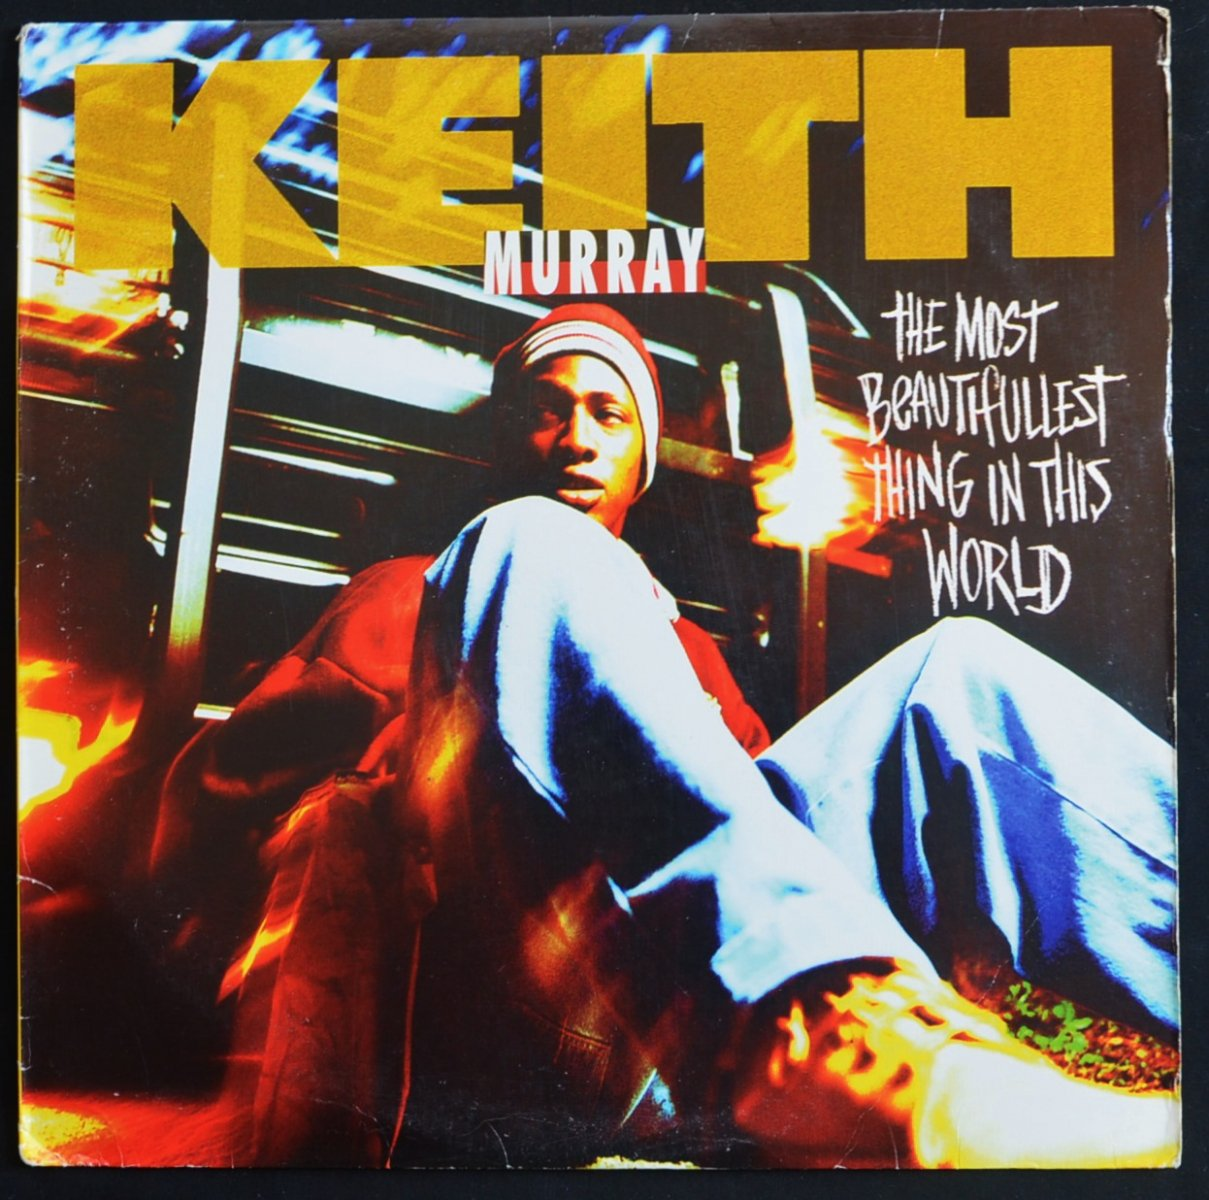 KEITH MURRAY ‎/ THE MOST BEAUTIFULLEST THING IN THIS WORLD / HERB IS PUMPIN' (12